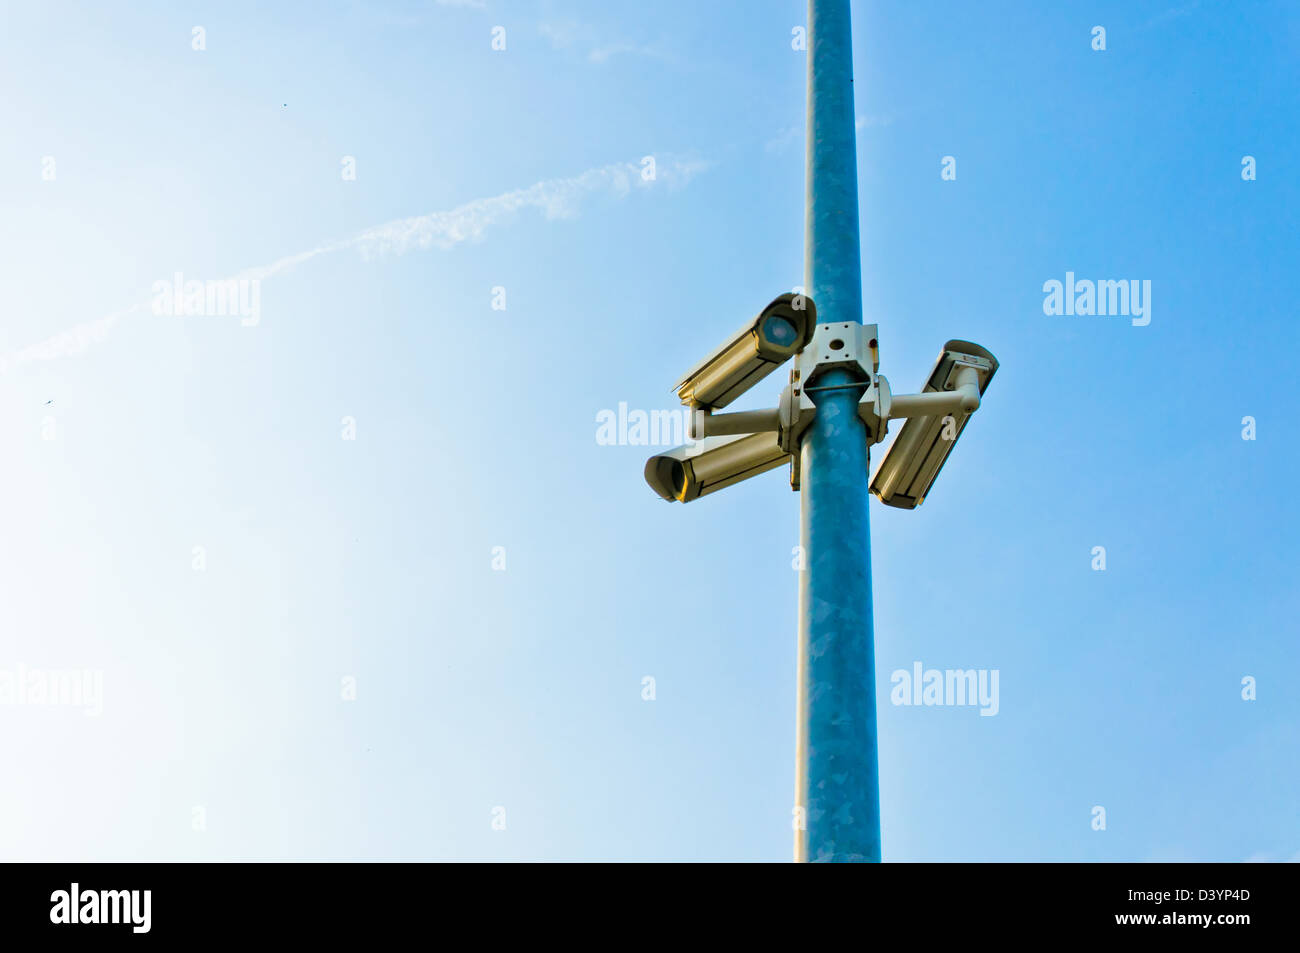 security cctv cameras on a pole with blue sky background - Stock Image